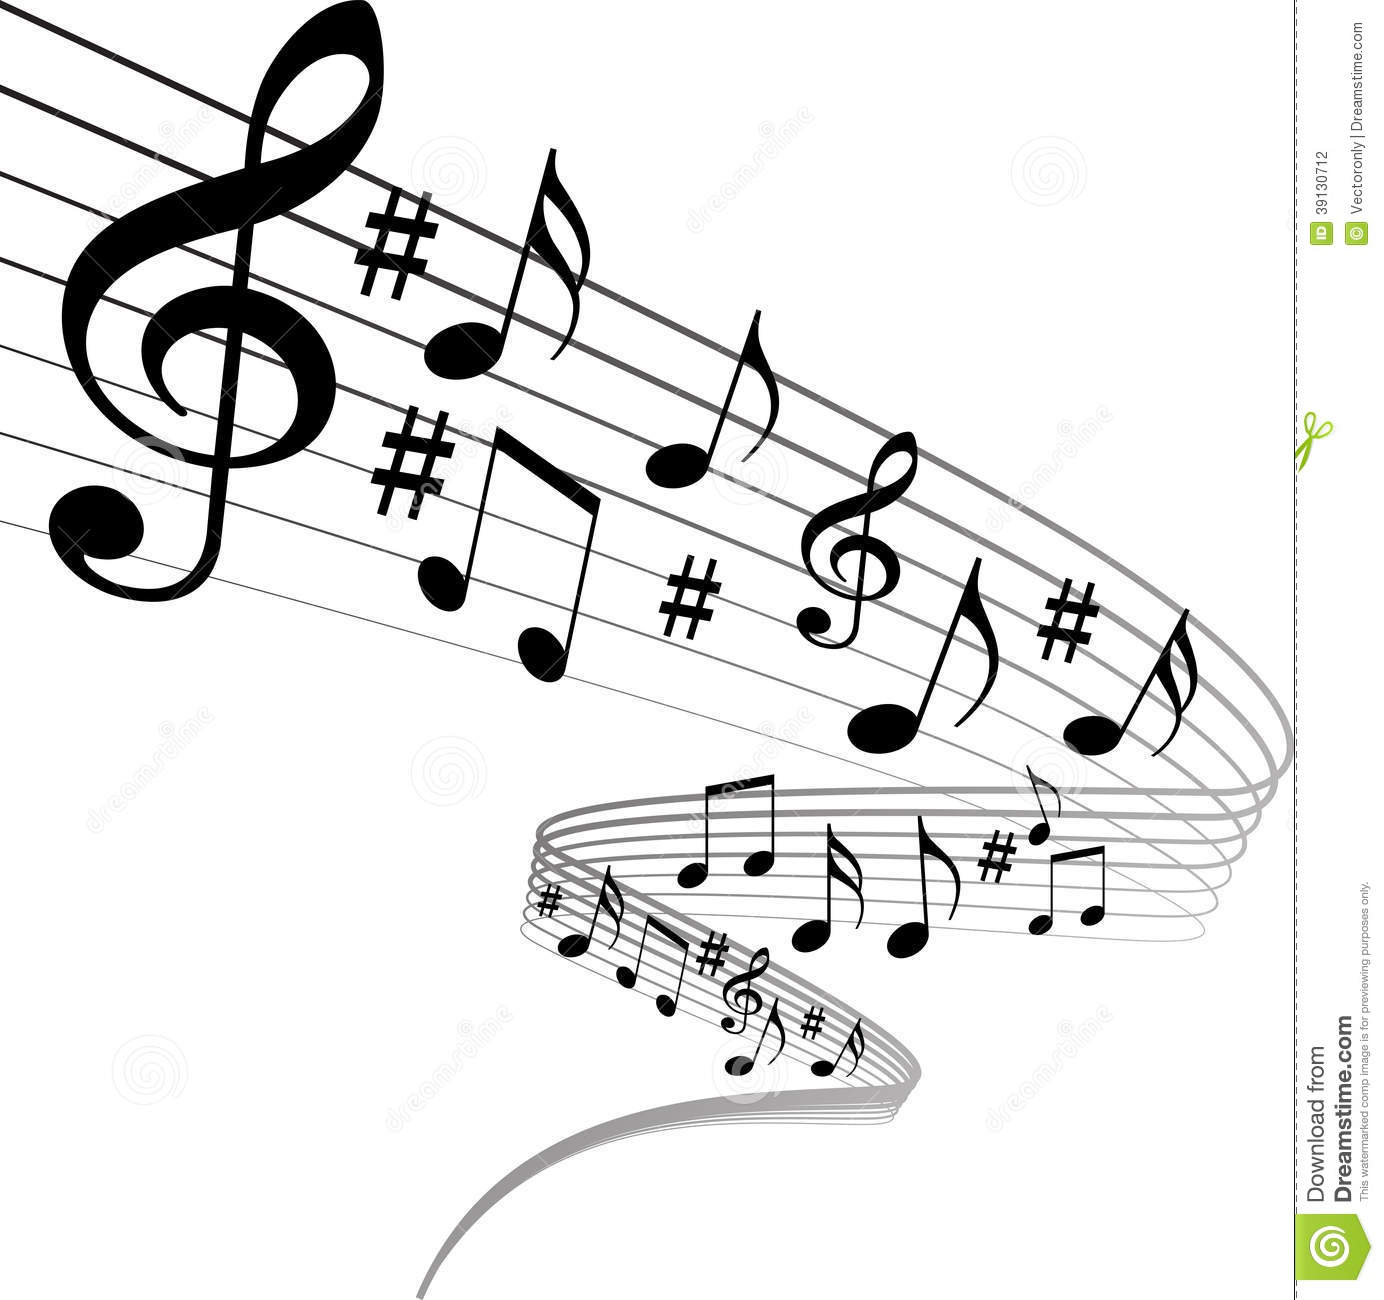 Music Notes Stock Vector - Image: 39130712